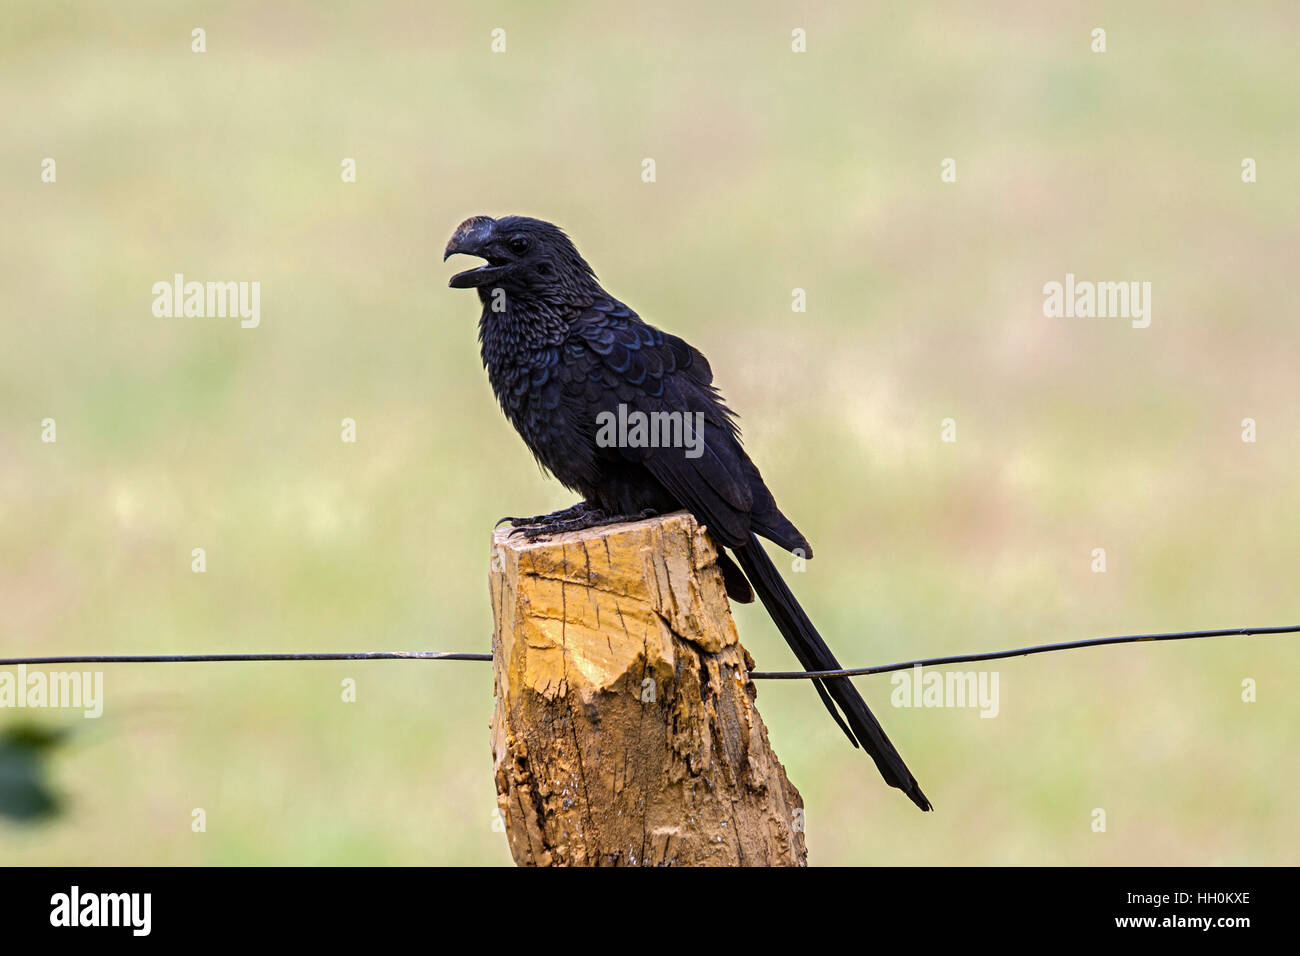 Smooth billed ani perched on fencepost in Brazil - Stock Image